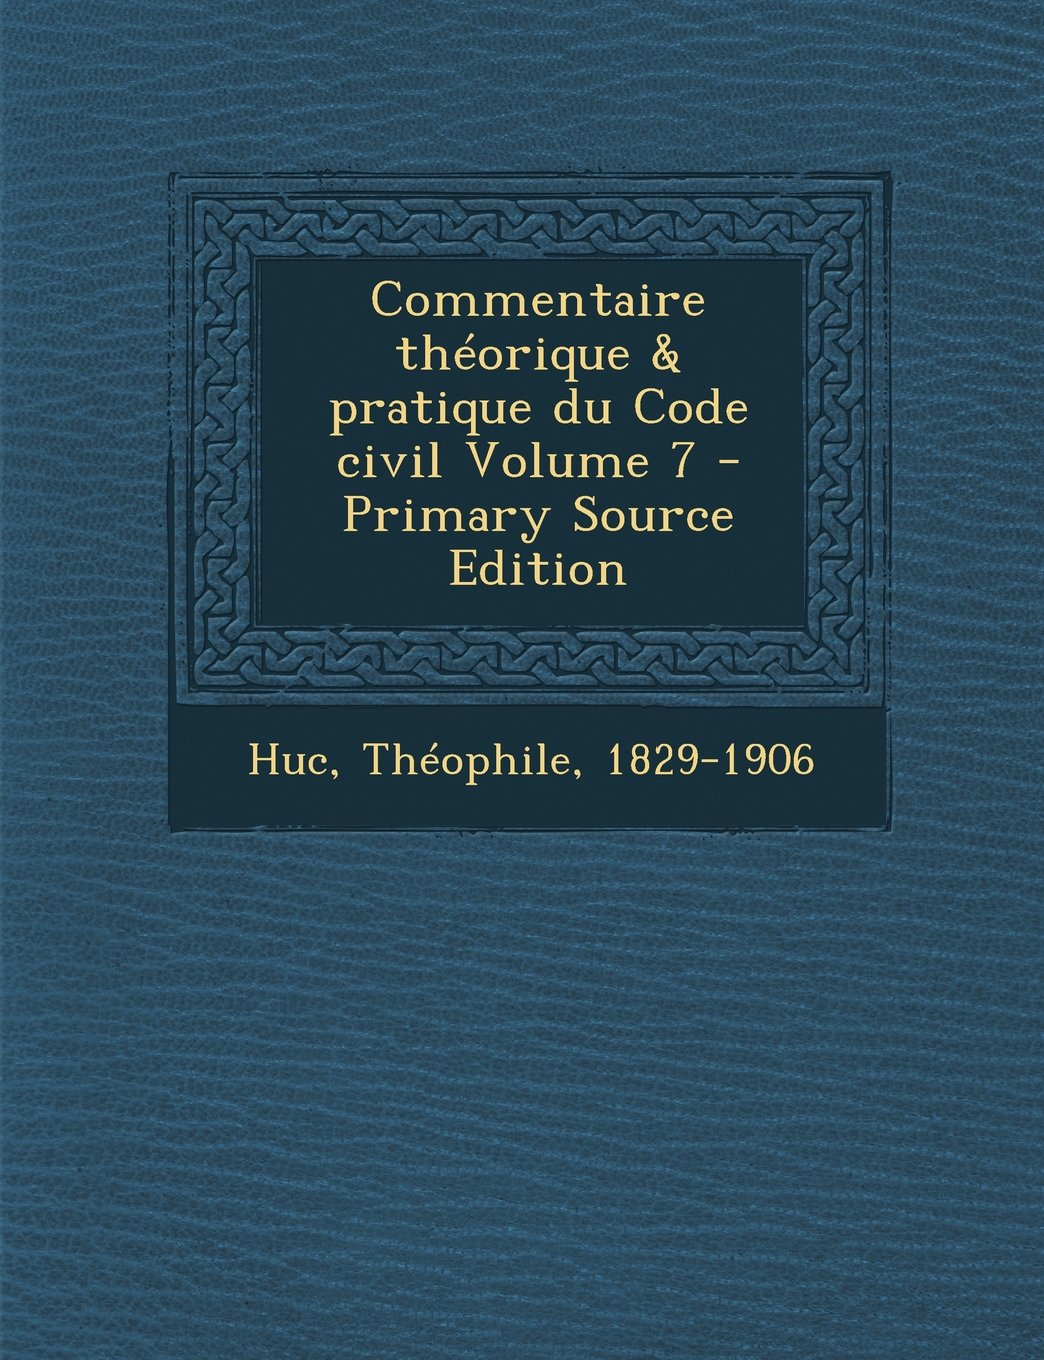 Commentaire Theorique & Pratique Du Code Civil Volume 7 - Primary Source Edition (French Edition) pdf